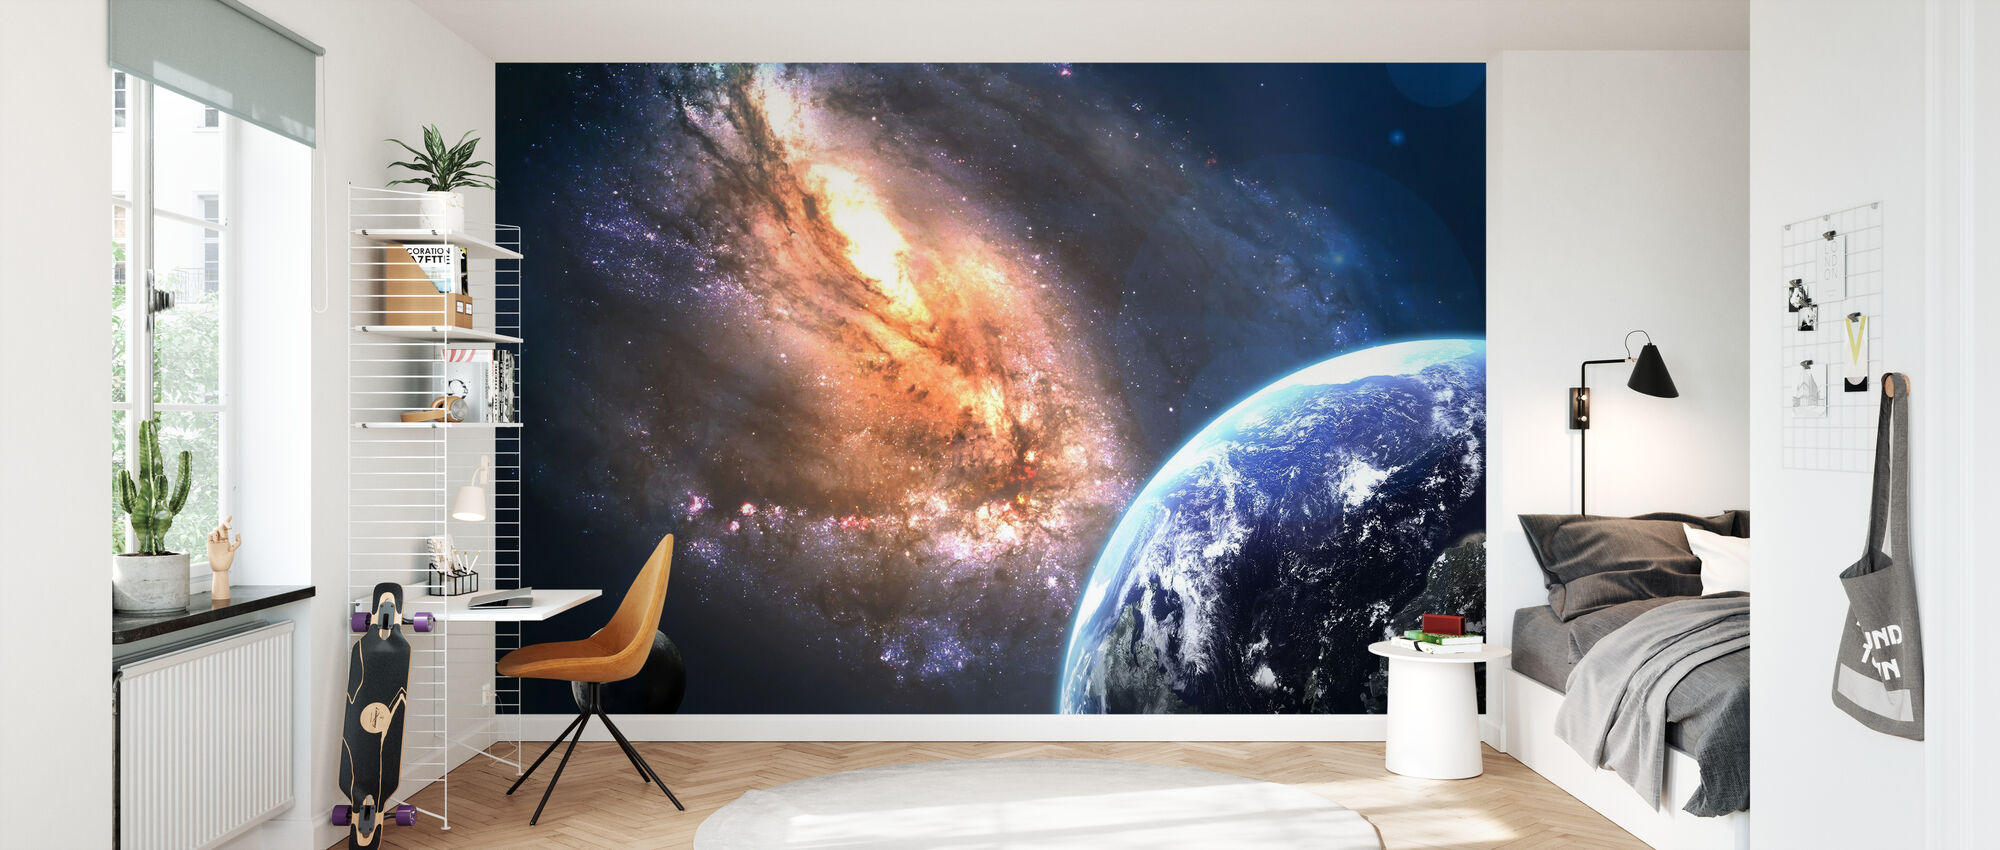 Earth in Space - Wallpaper - Kids Room